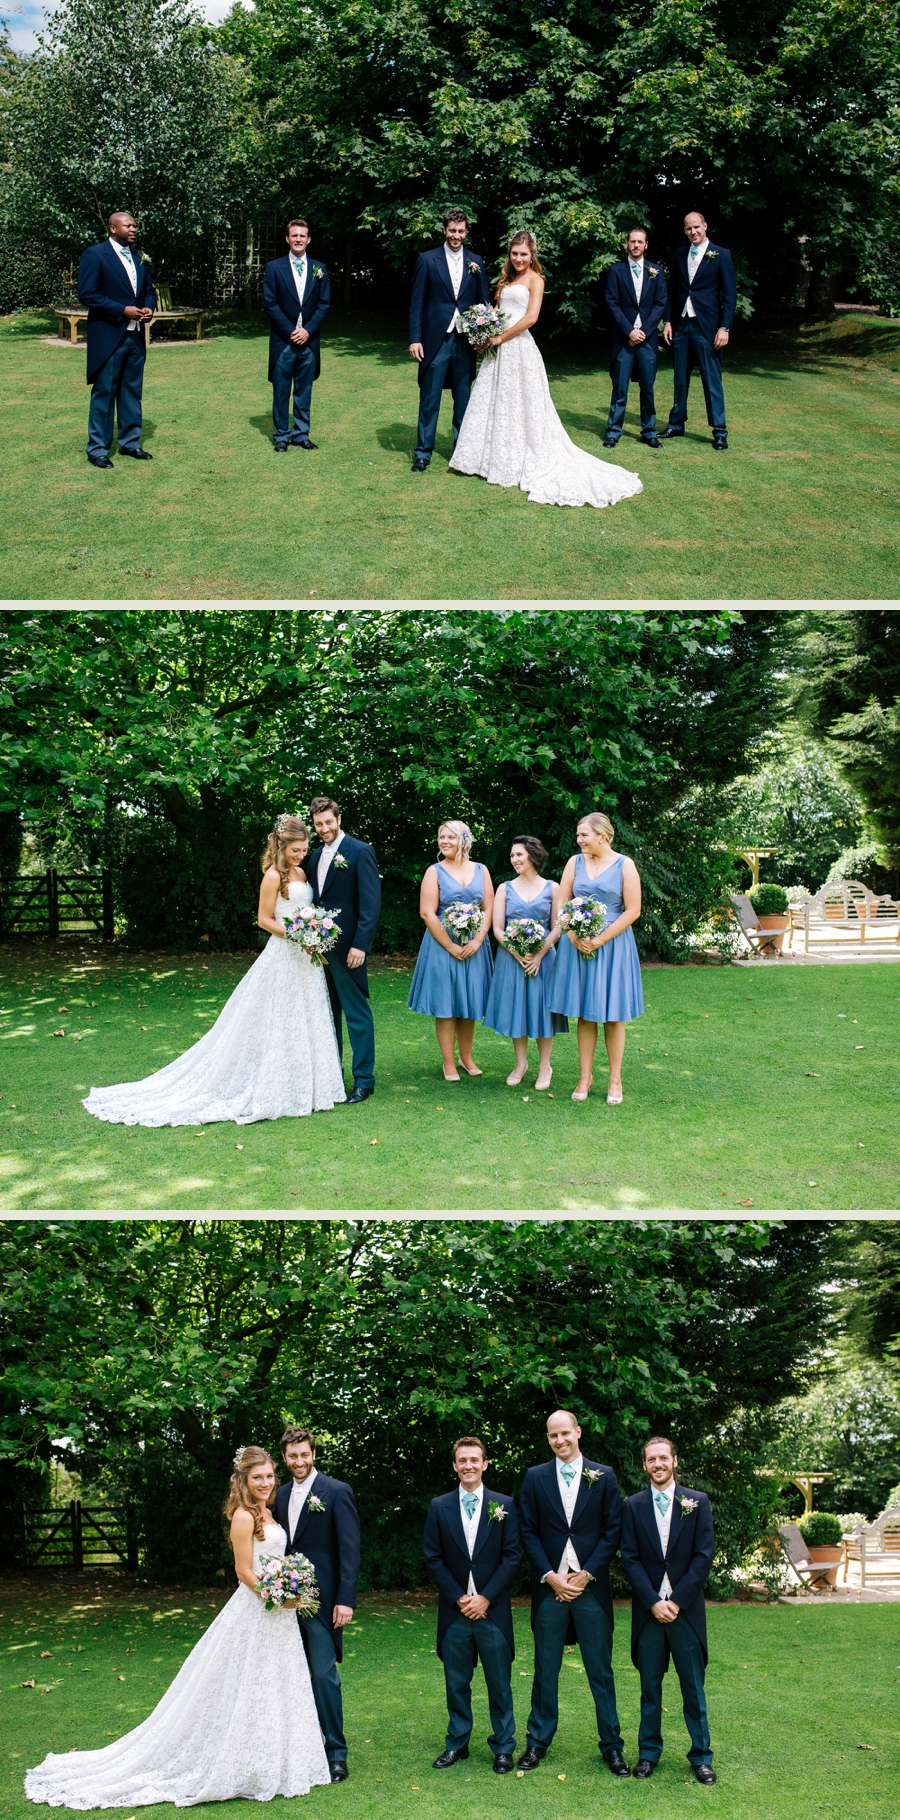 Somerset wedding photographer Packington Moor Wedding Emily and Lee 16